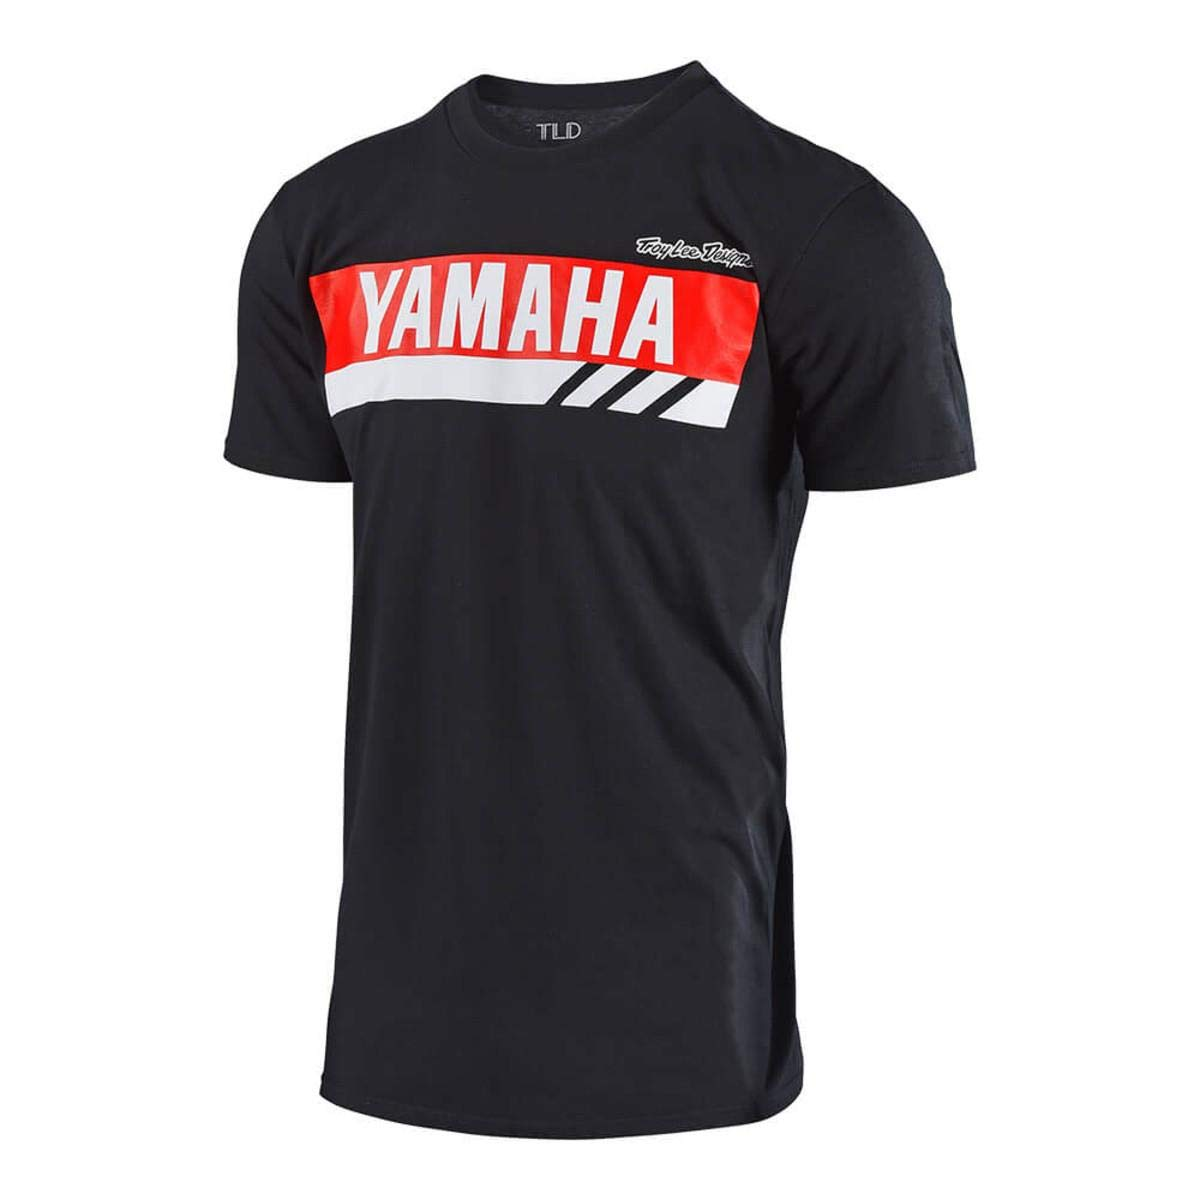 Troy Lee Designs Yamaha RS1 Mens Short Sleeve T-Shirt Black SM 701645222